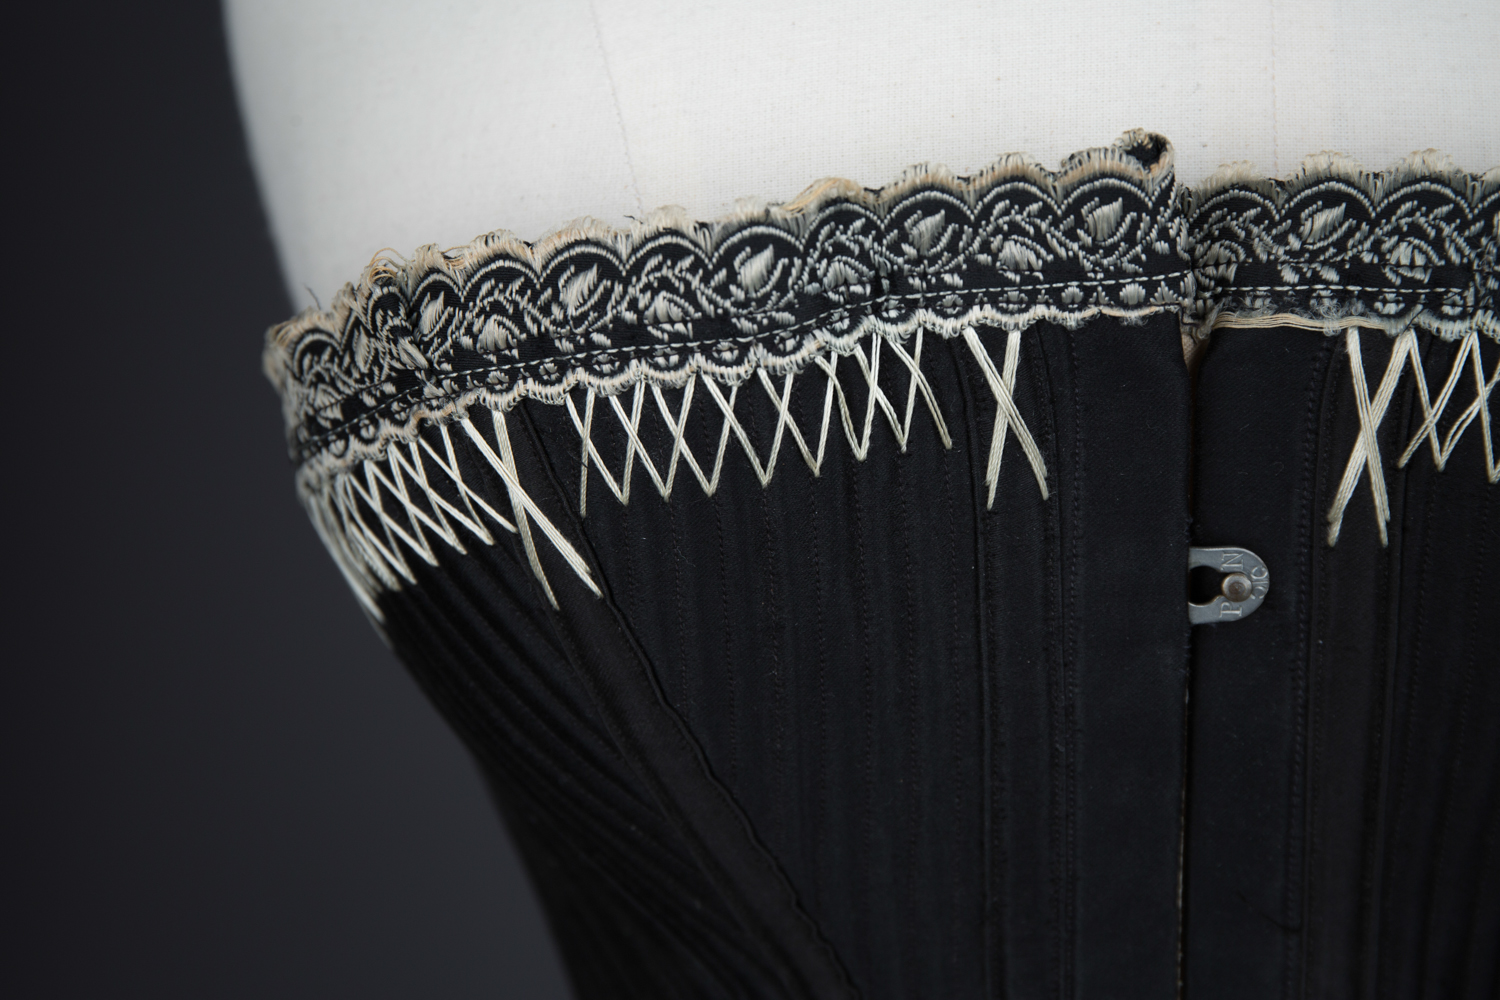 Black Cotton Sateen Corset With White Flossing & Woven Trim by P. N., C. late 1880s - early 1890s, USA. The Underpinnings Museum. Photography by Karolina Laskowska